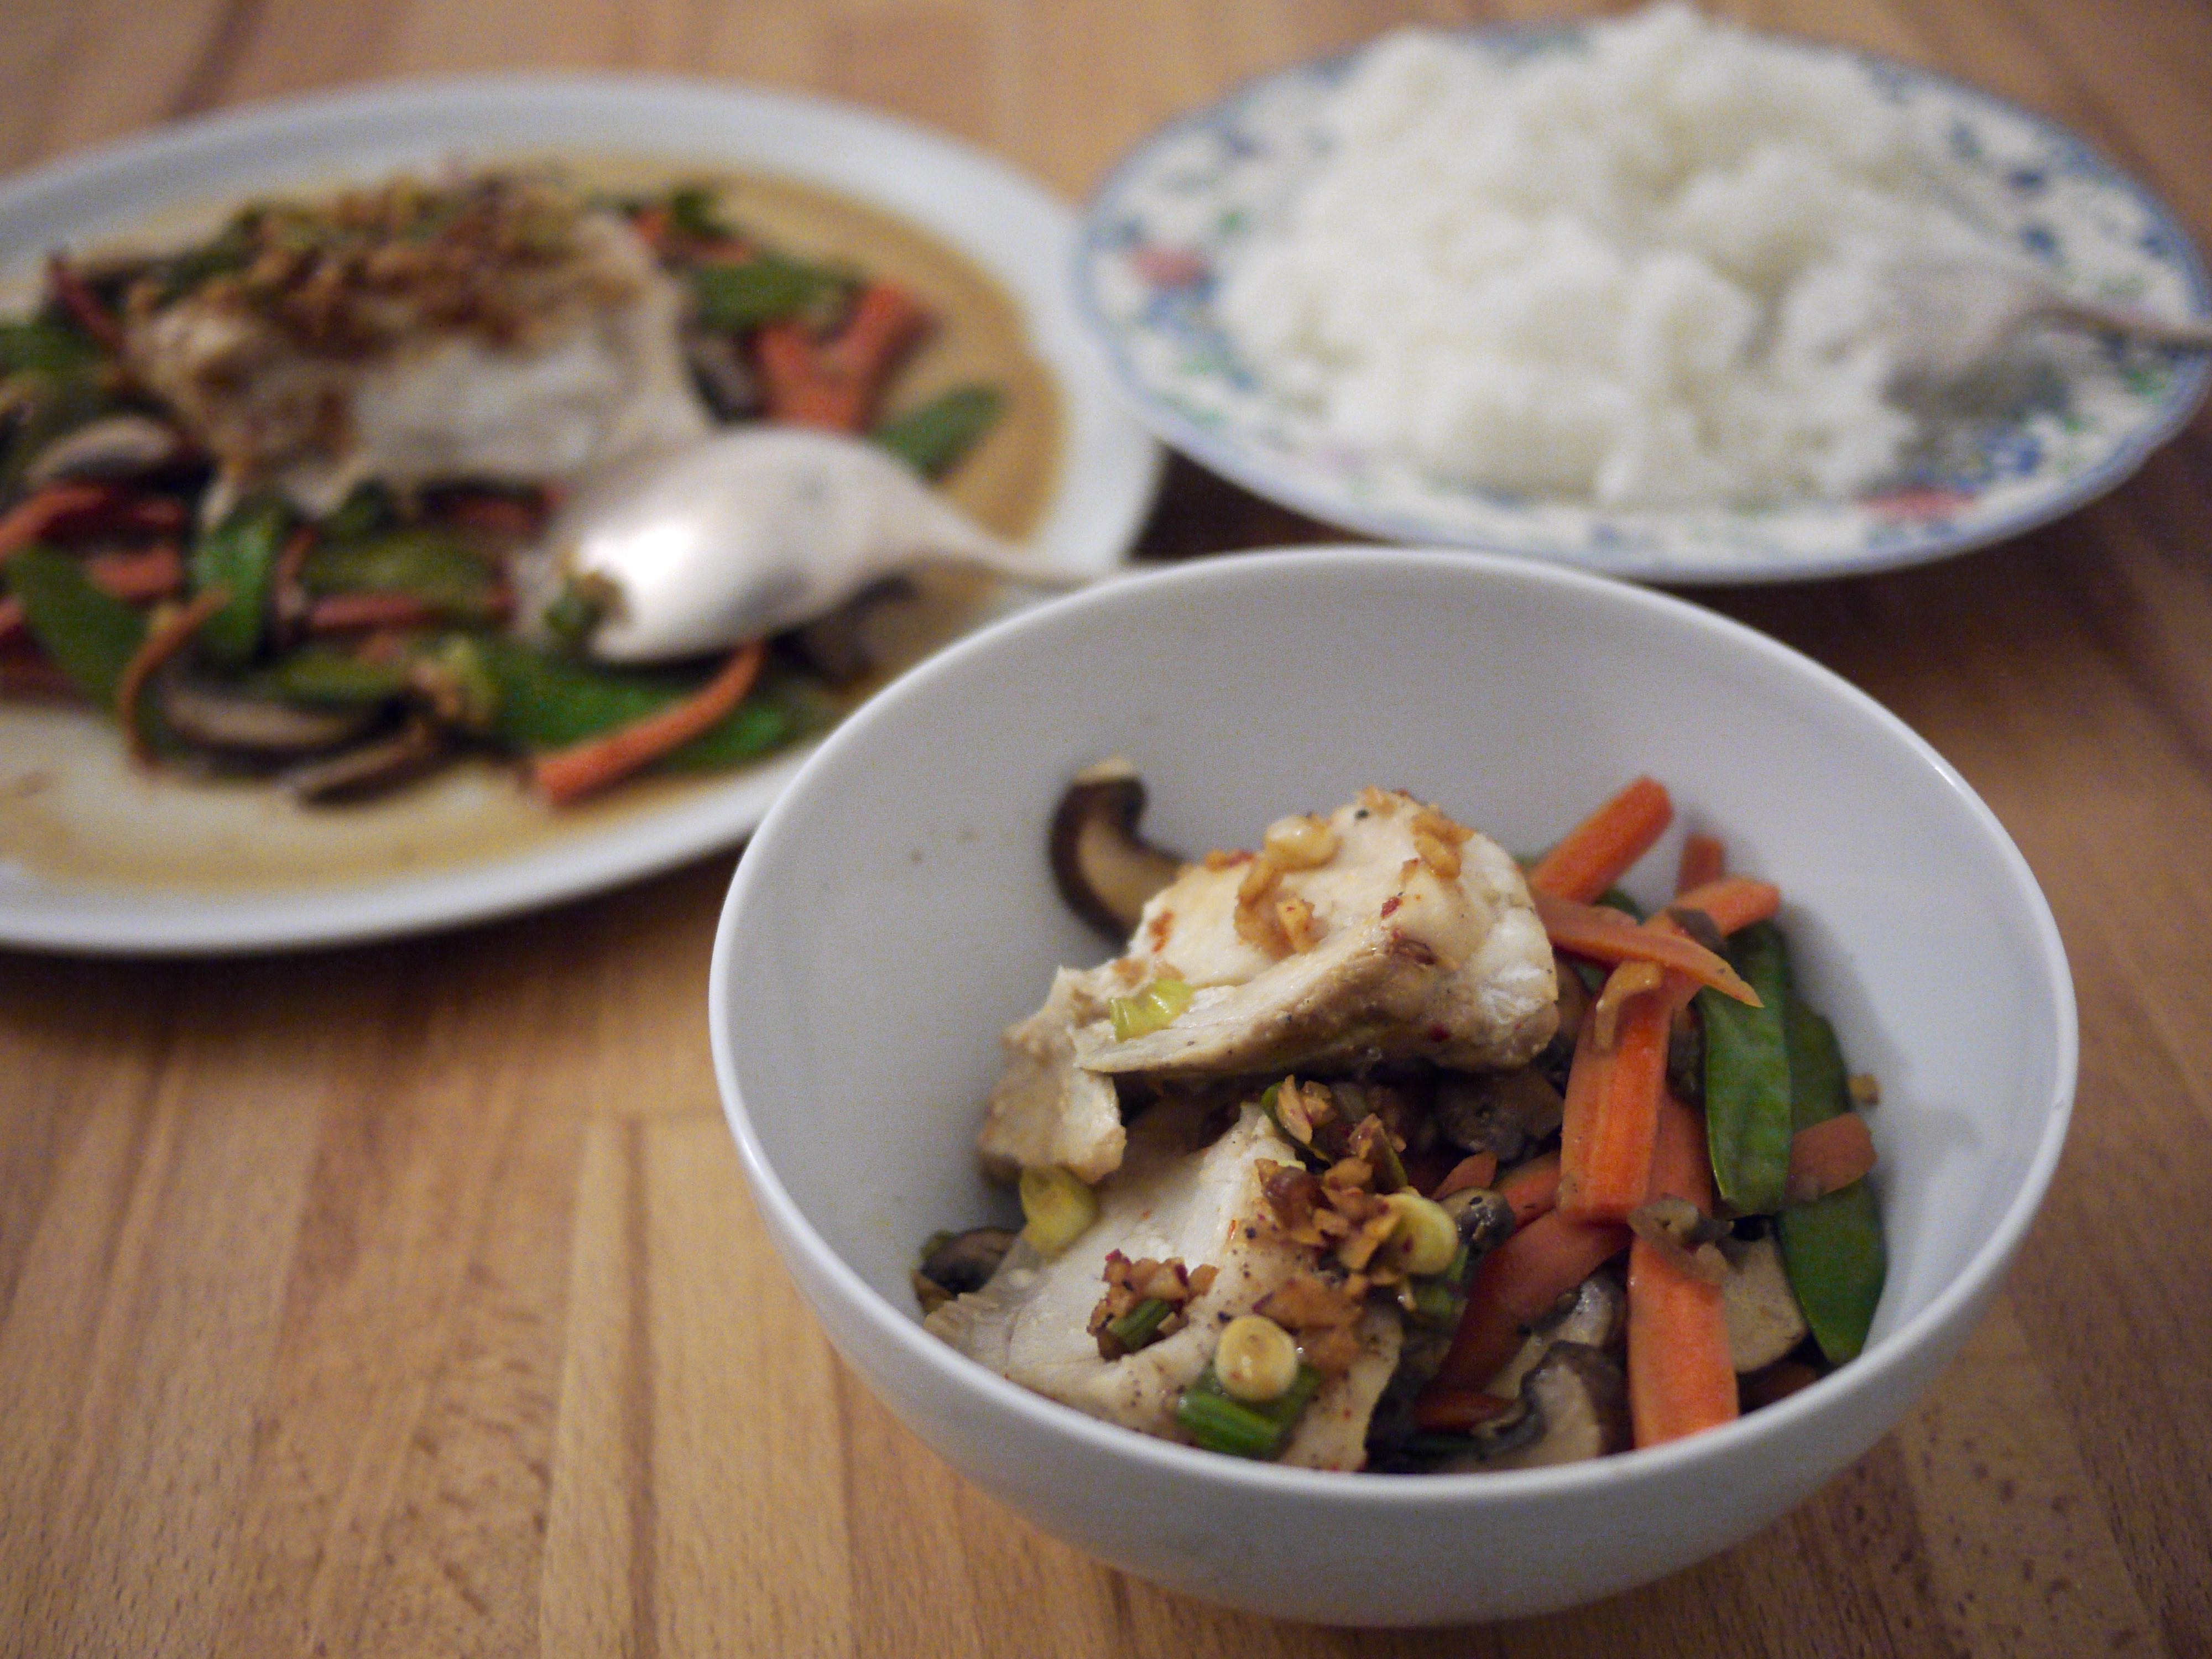 chinese-style steamed fish + stir-fried veg trio